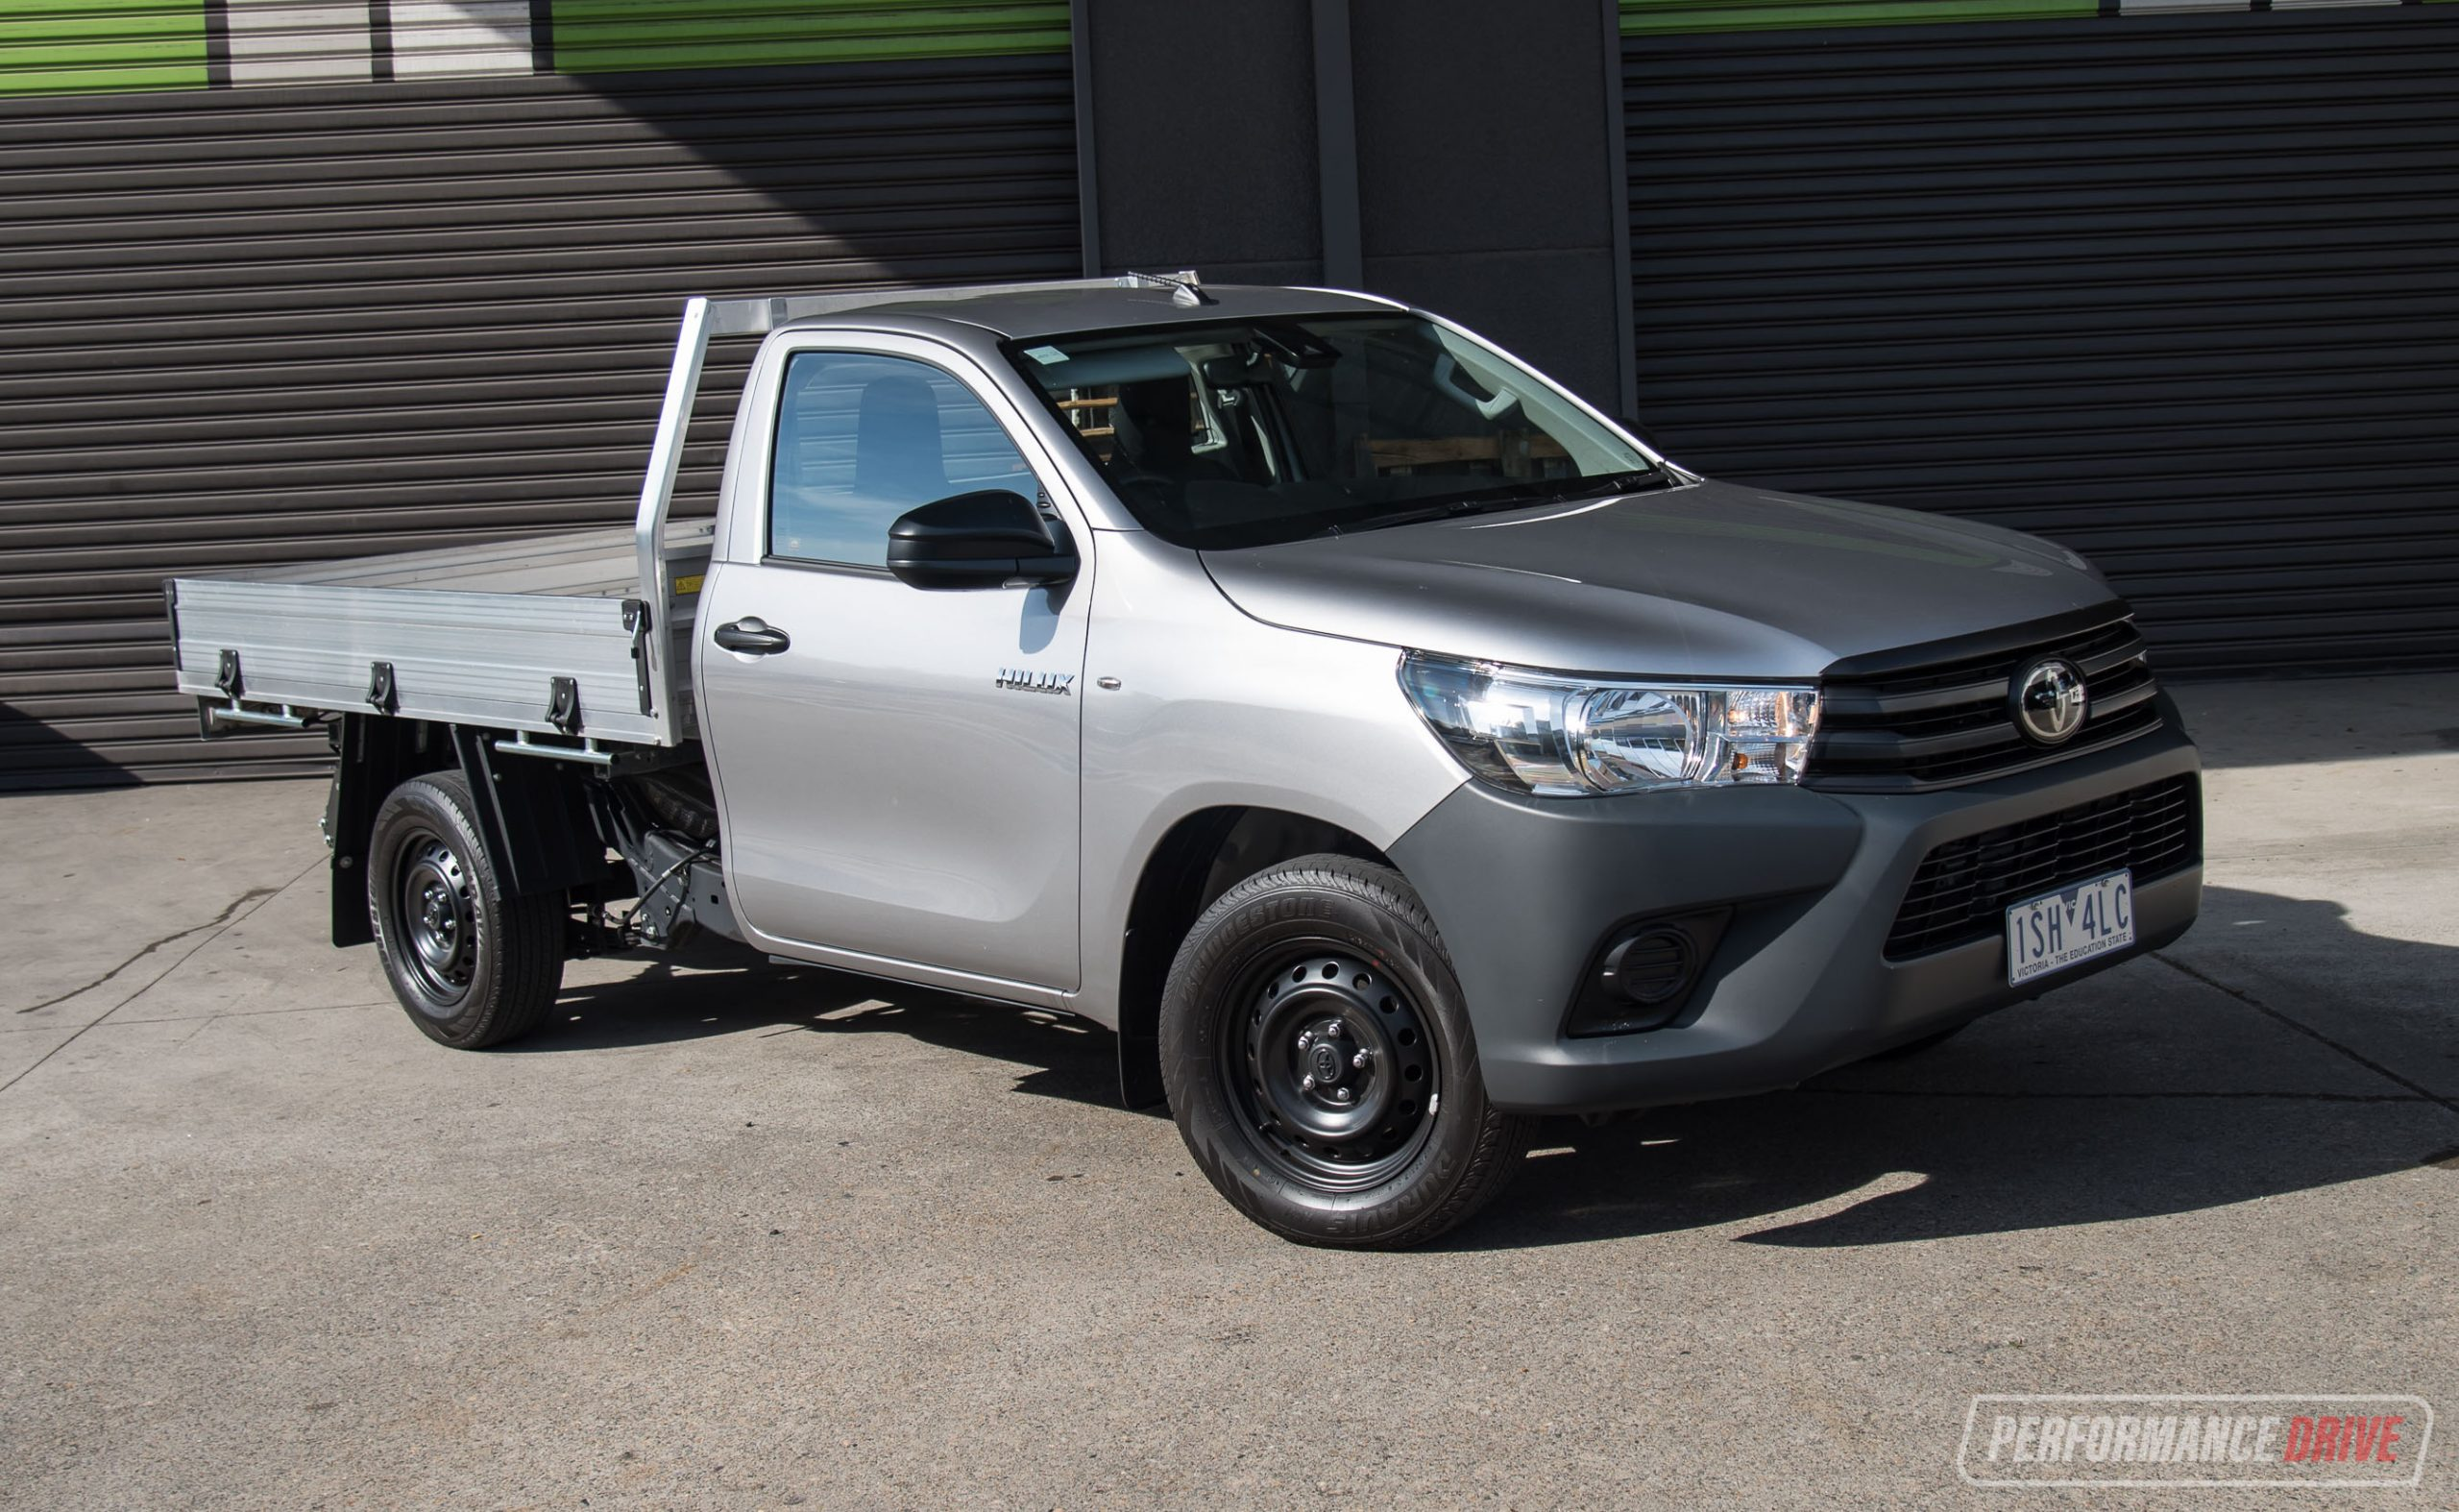 2021 Toyota HiLux WorkMate 2.7 review (video)